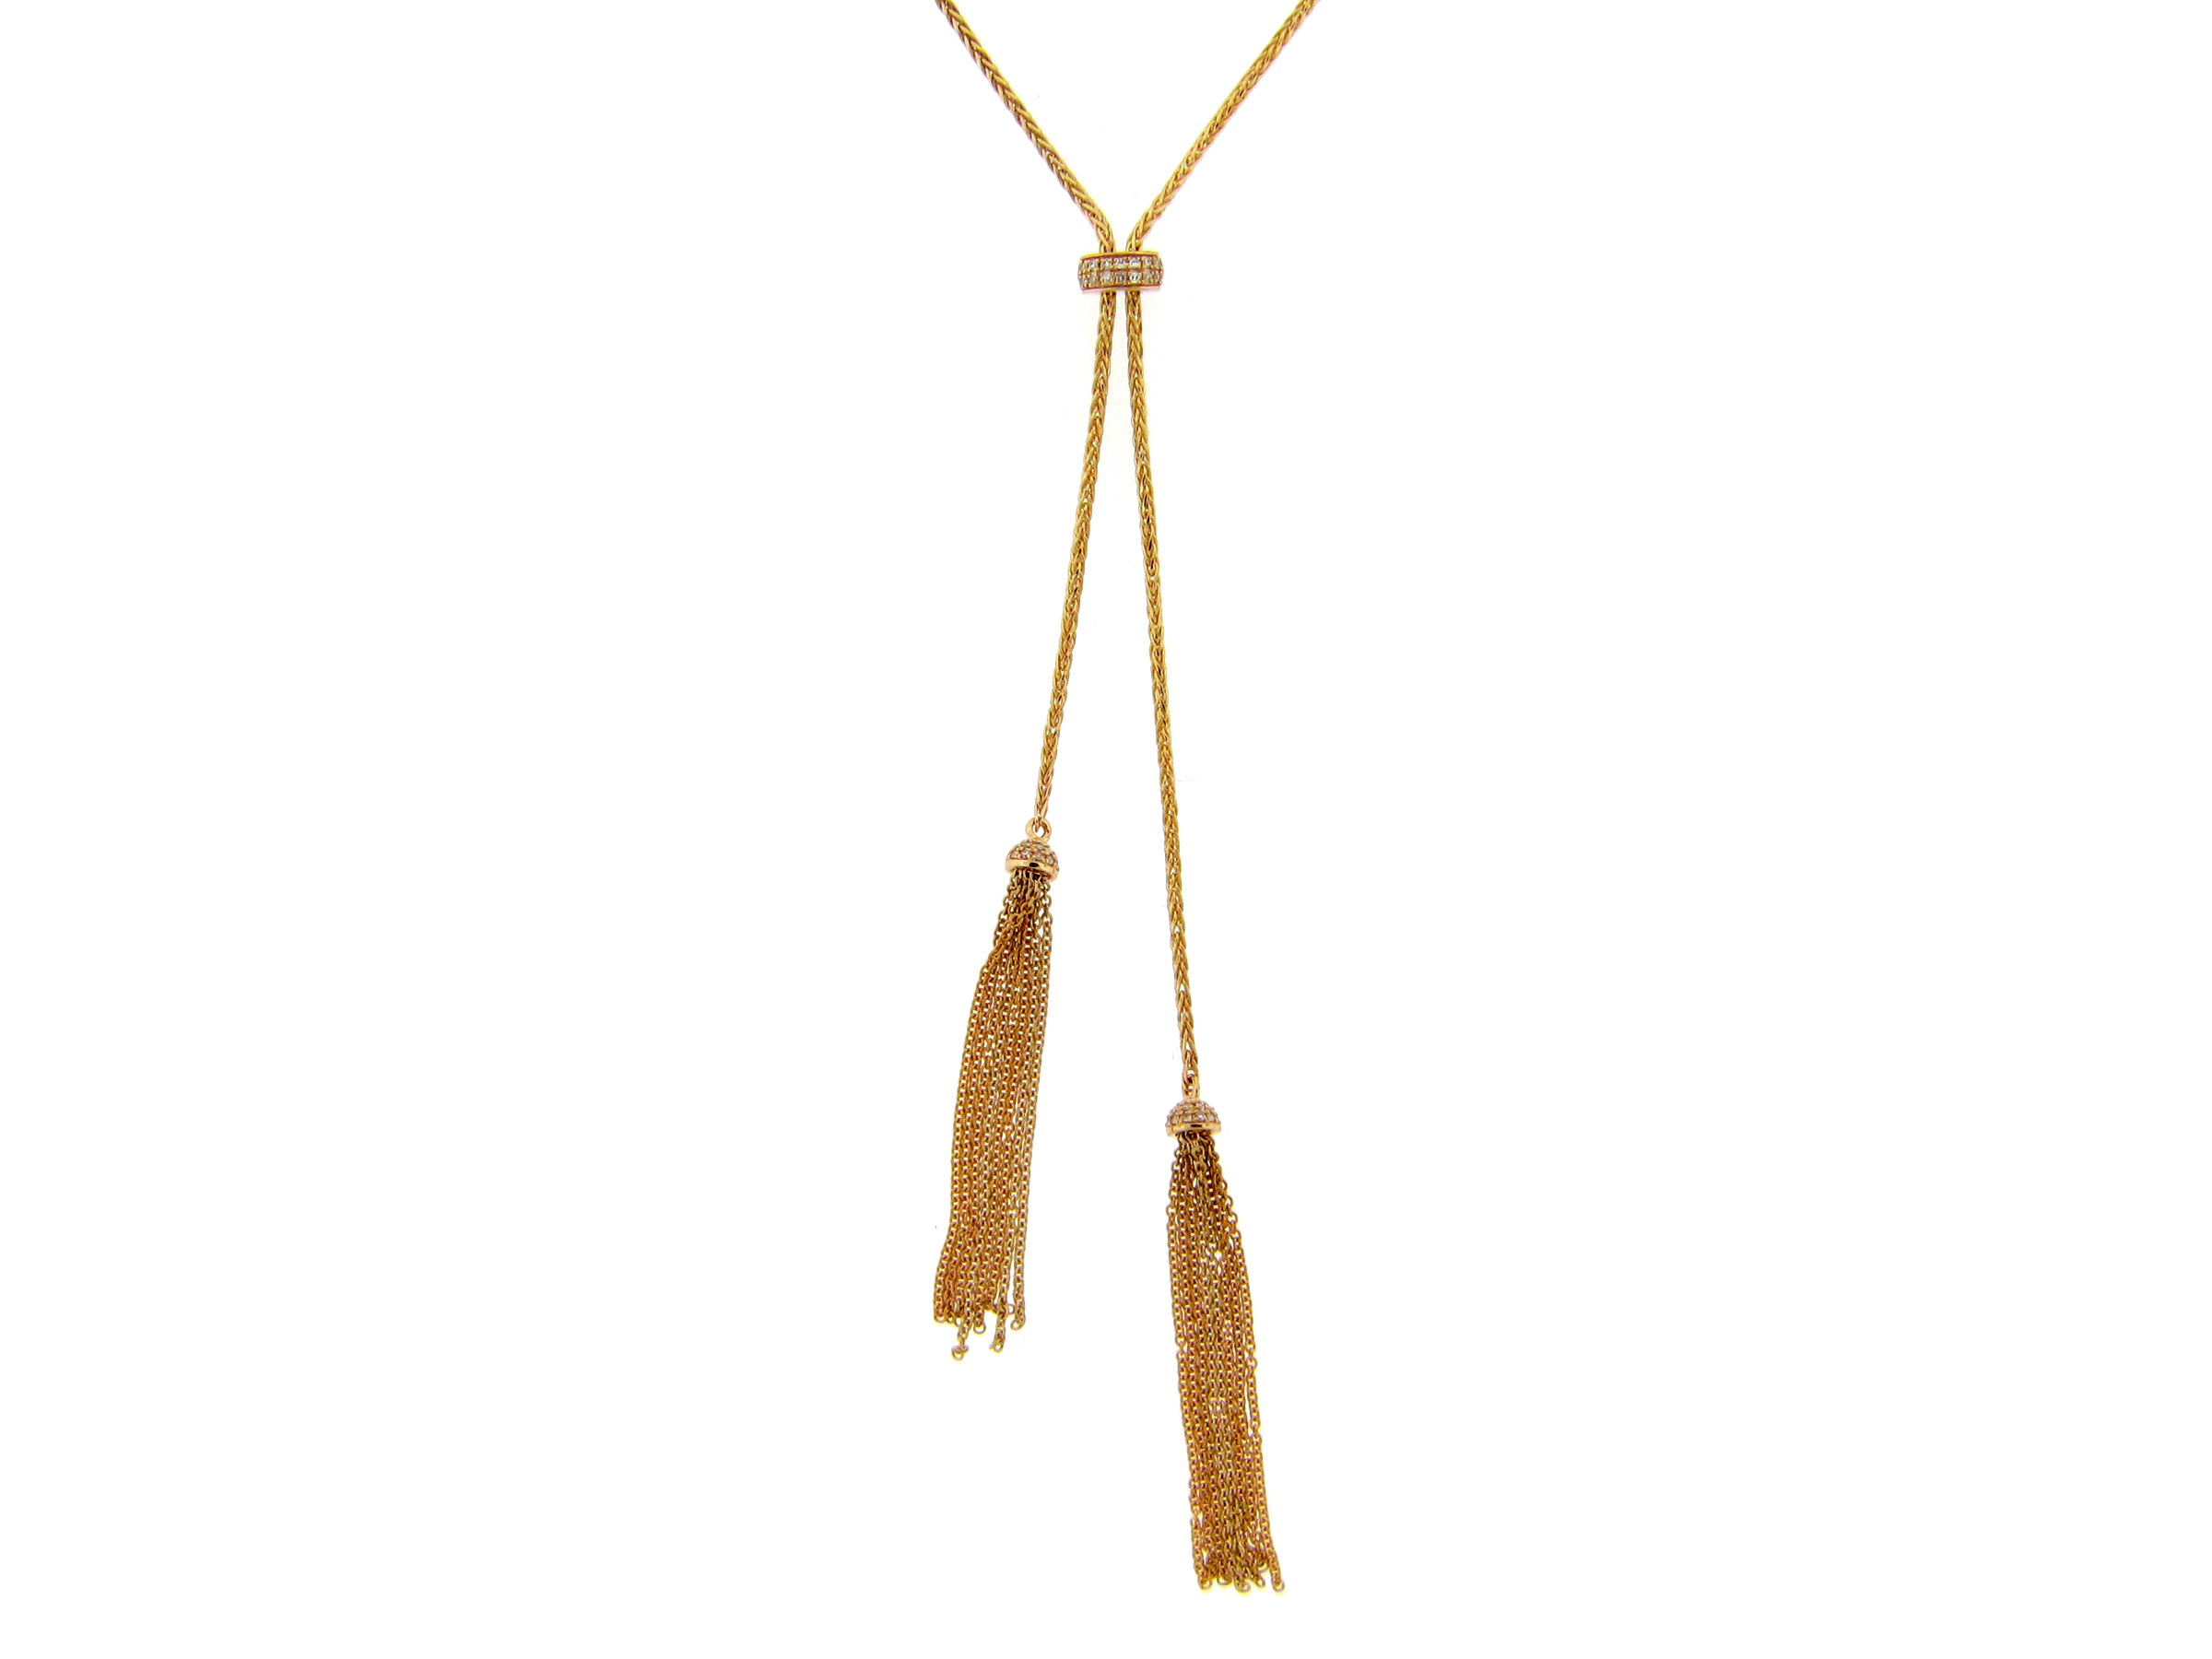 Bolo Diamond Necklace with Tassels